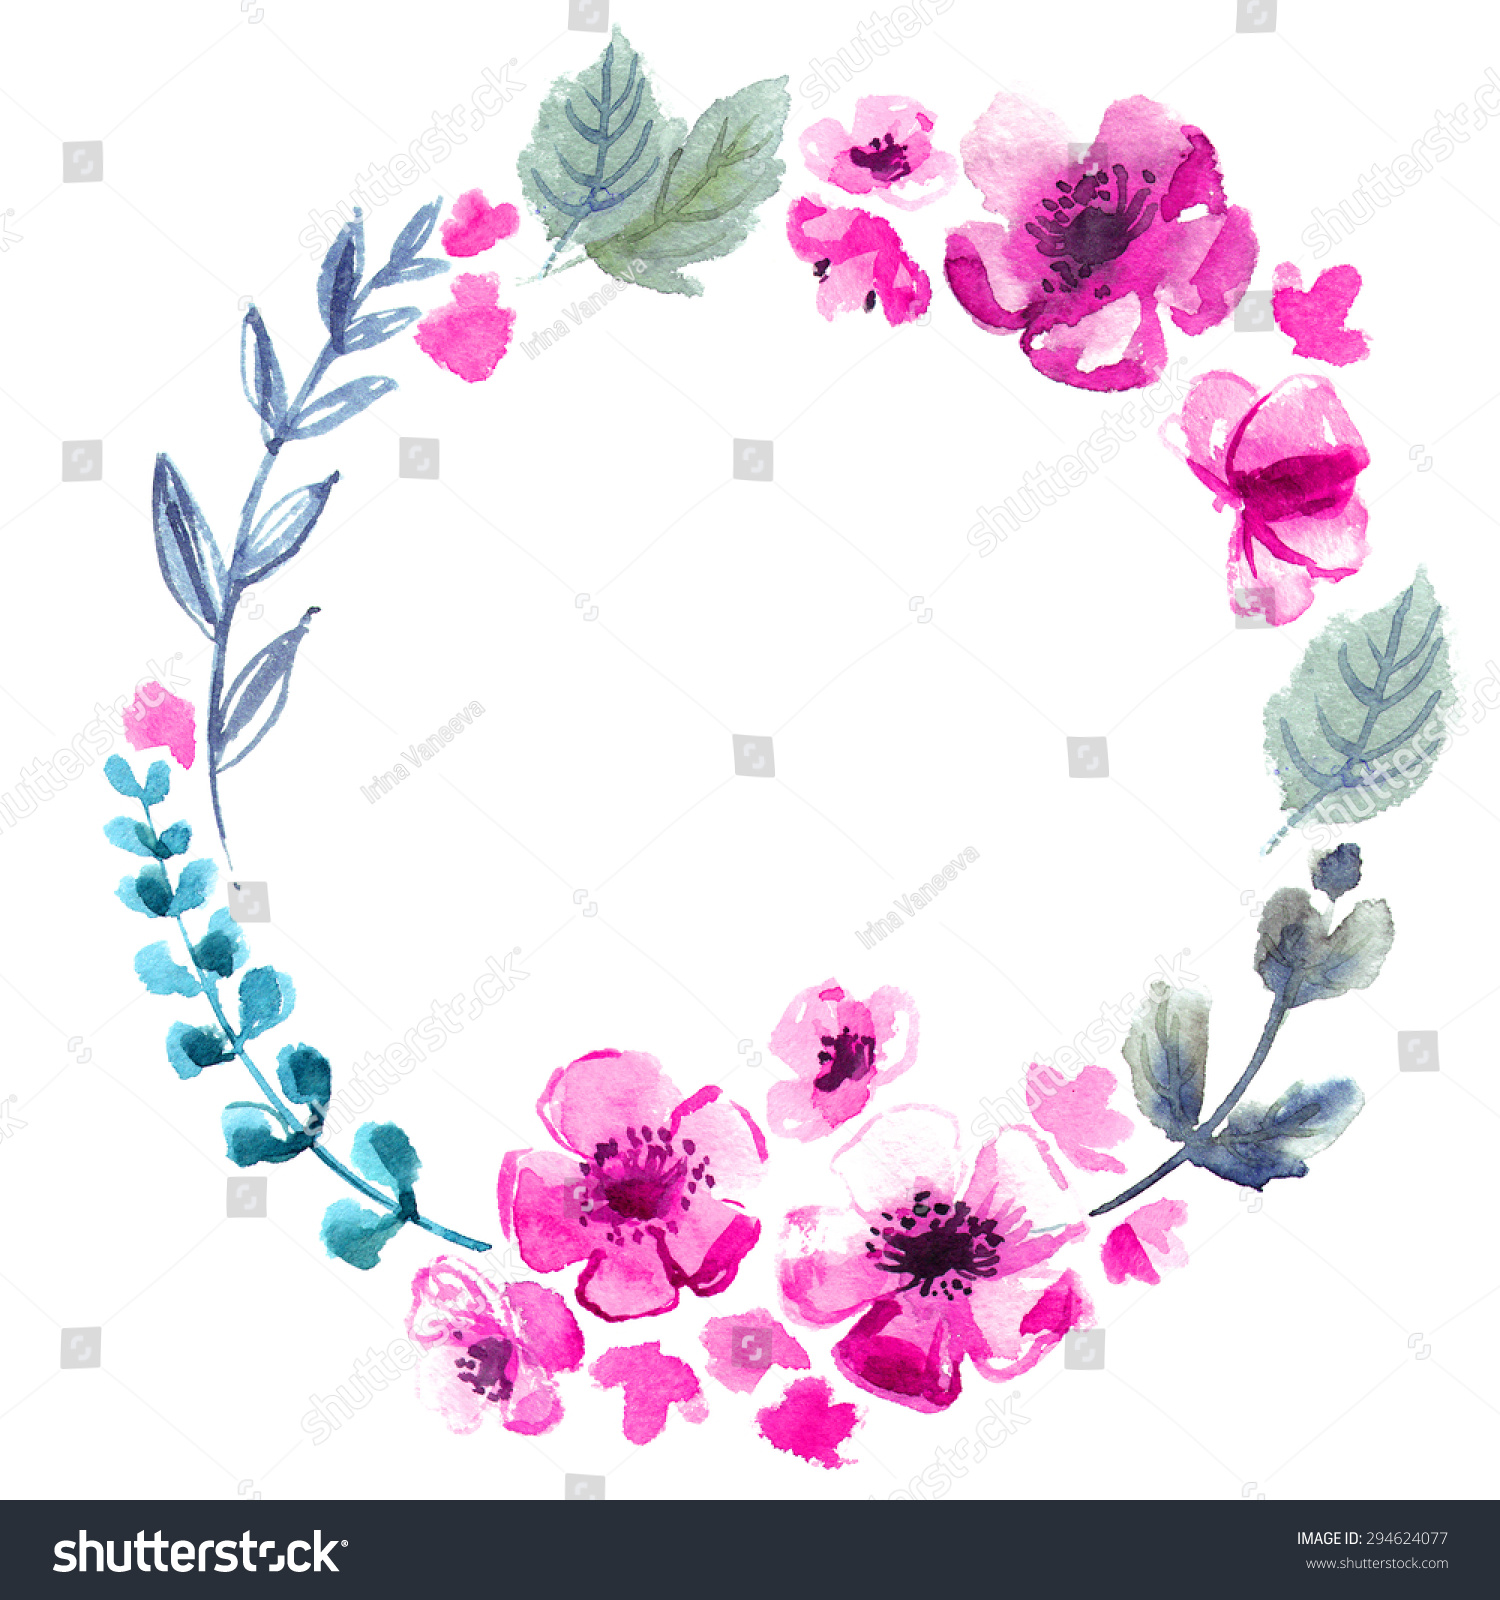 The Wreath Of Flowers Watercolor On A White Background Wedding